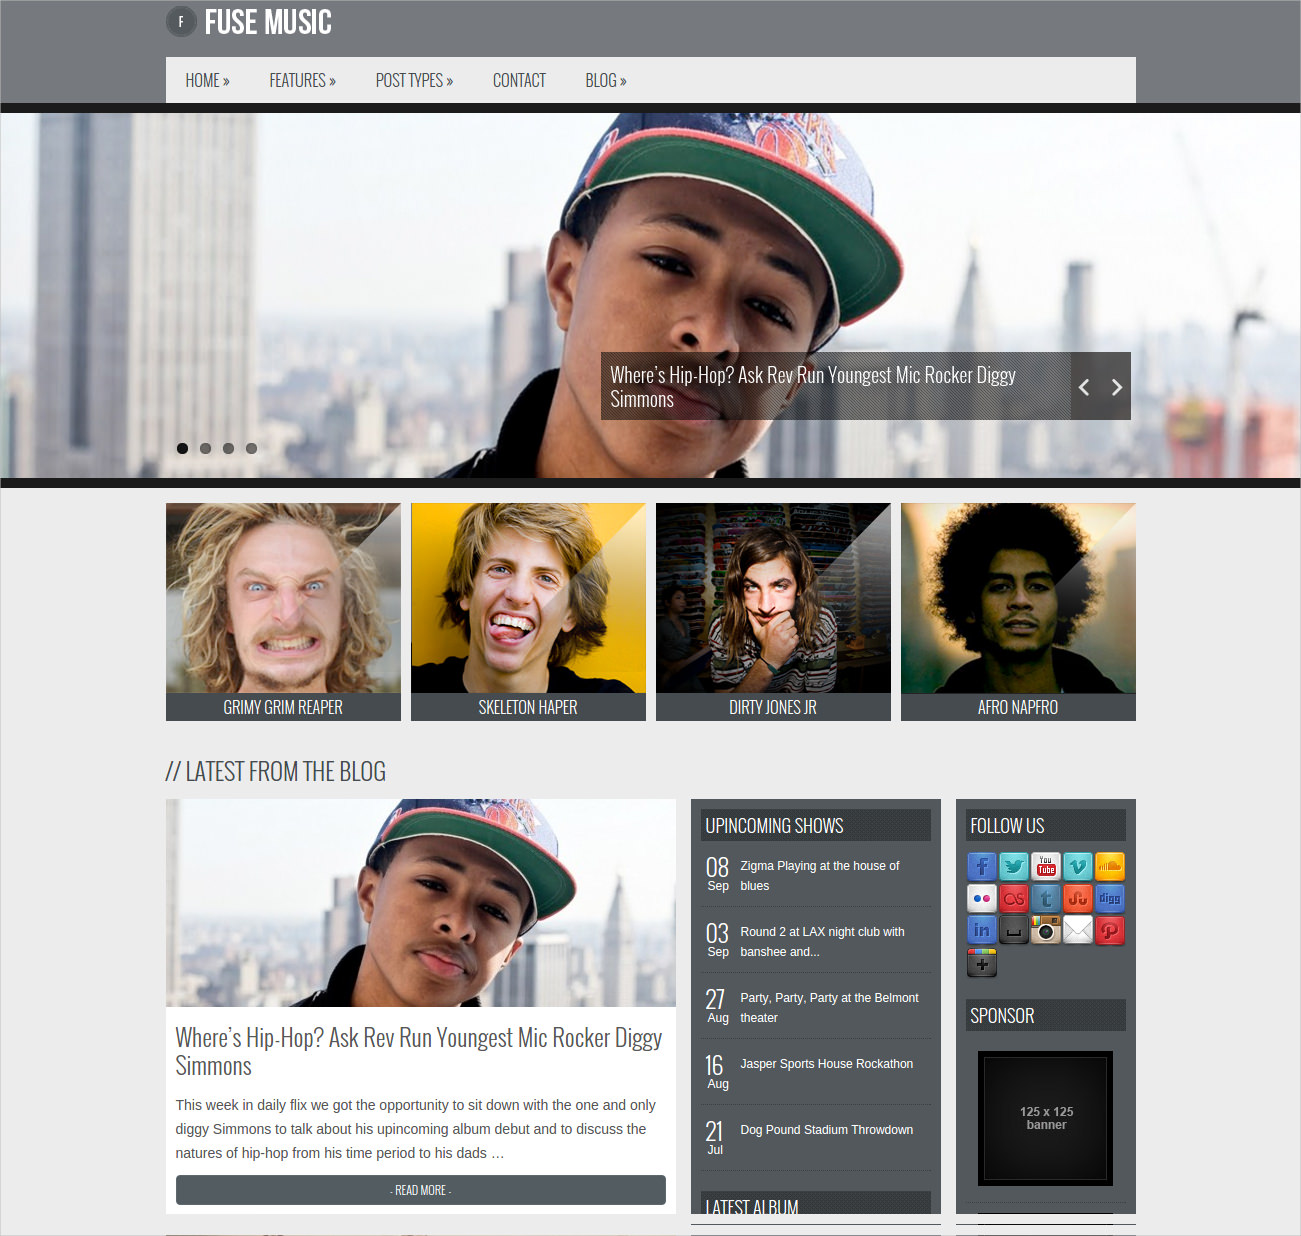 Fuse WordPress Music Theme - $49